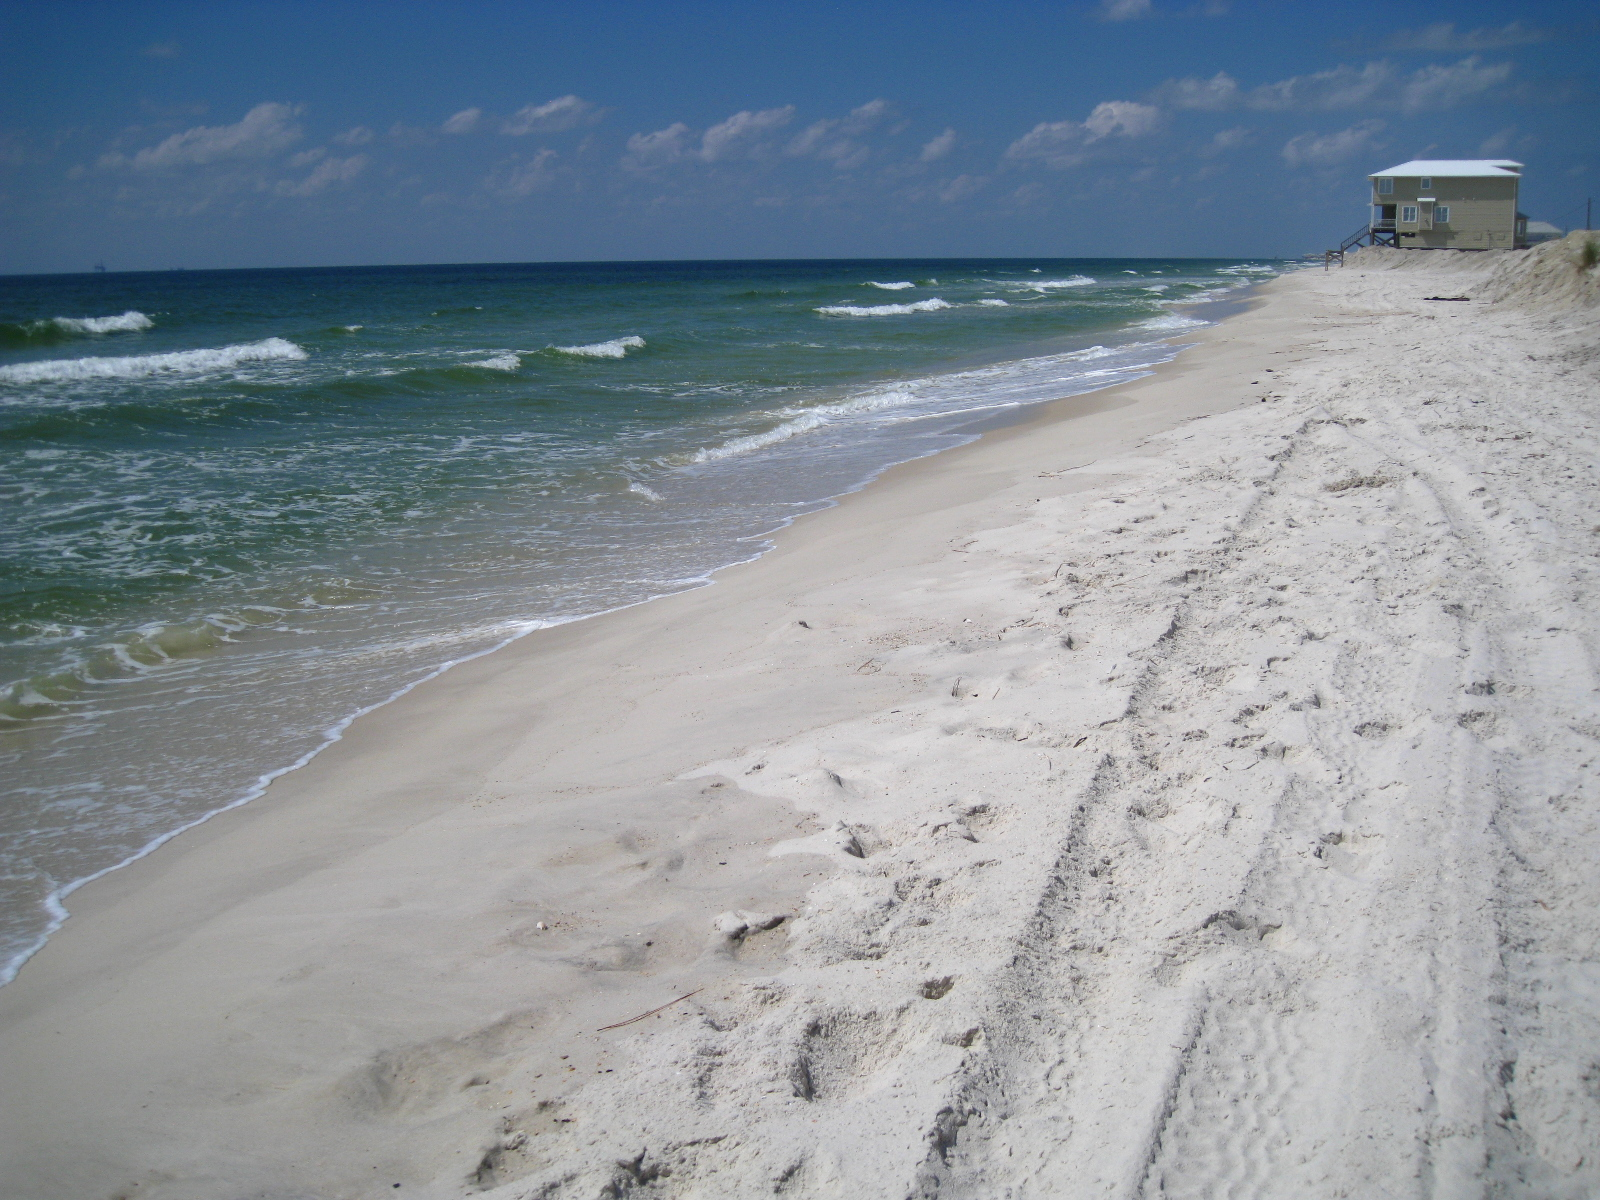 The post-spill beach in front of Ryan Court, Dauphin Island, Alabama (Sept 2010)